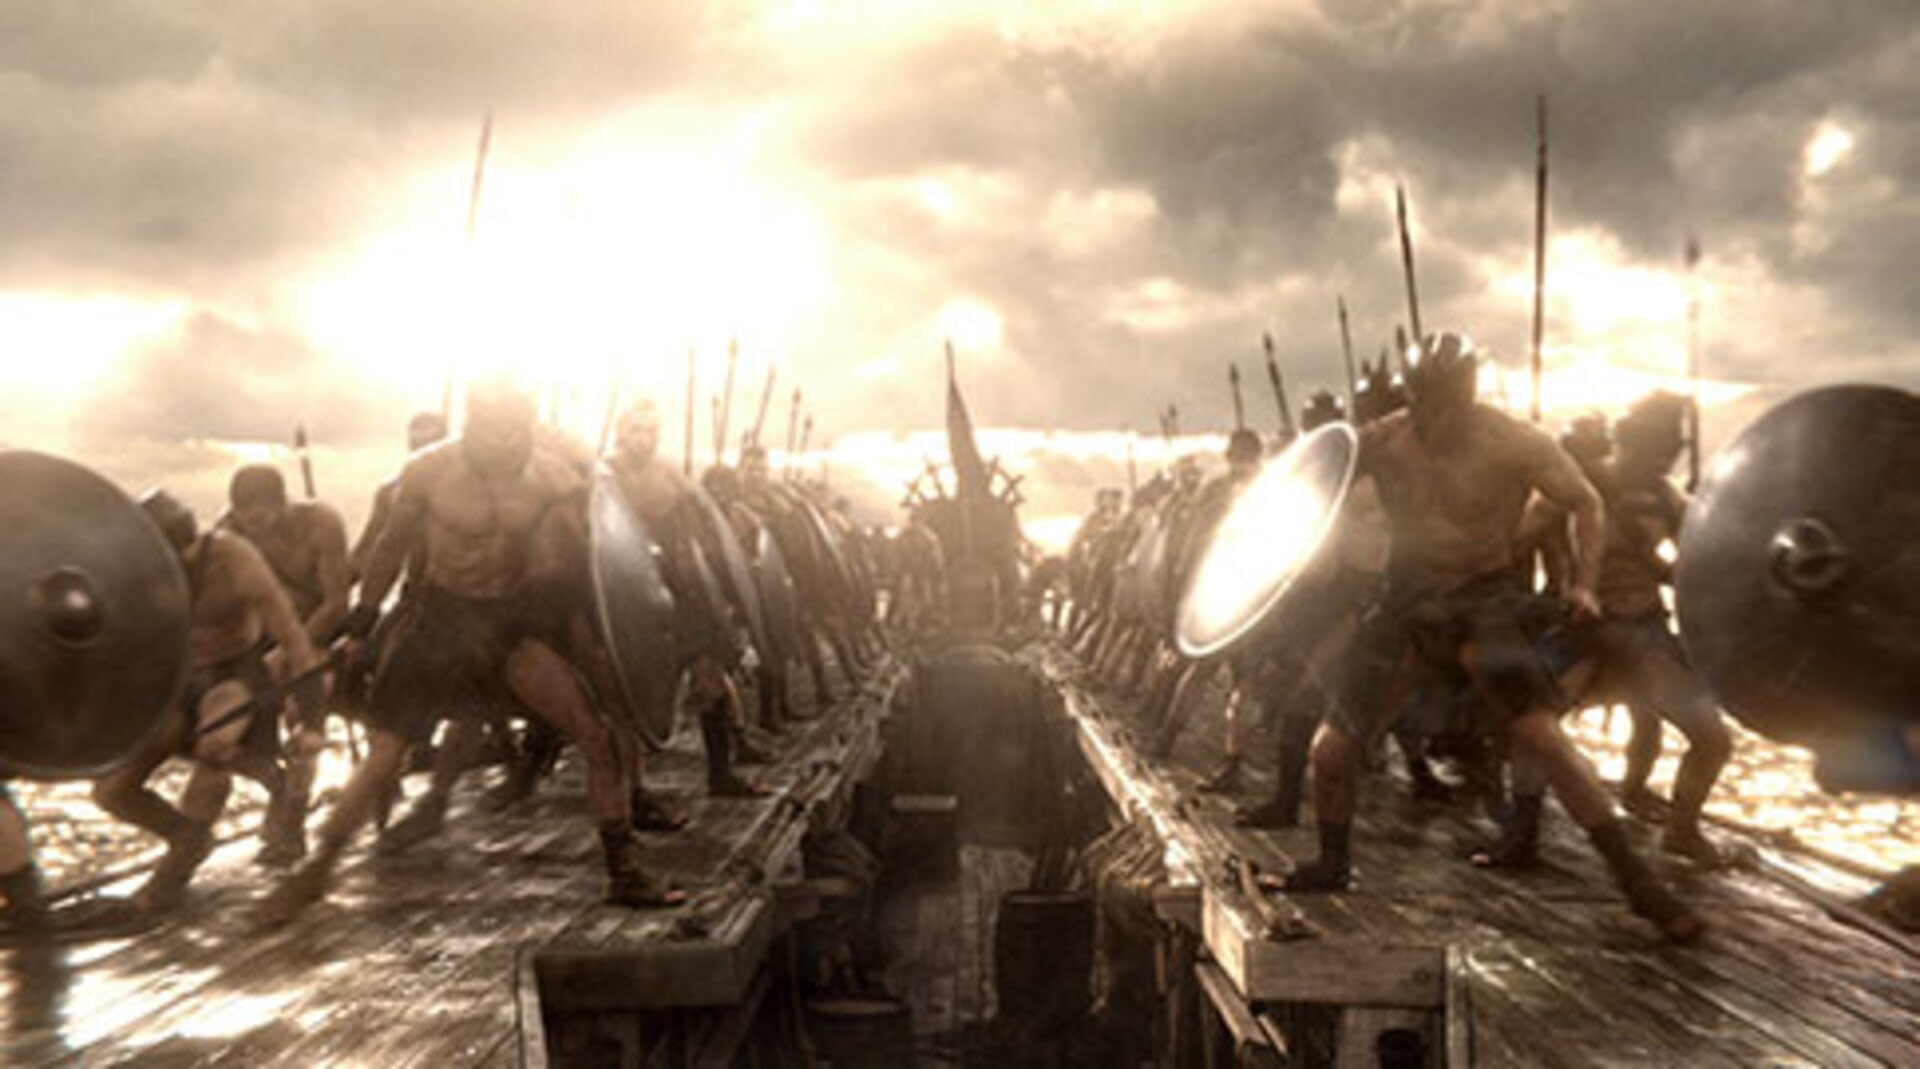 300: Rise of an Empire - Image 27